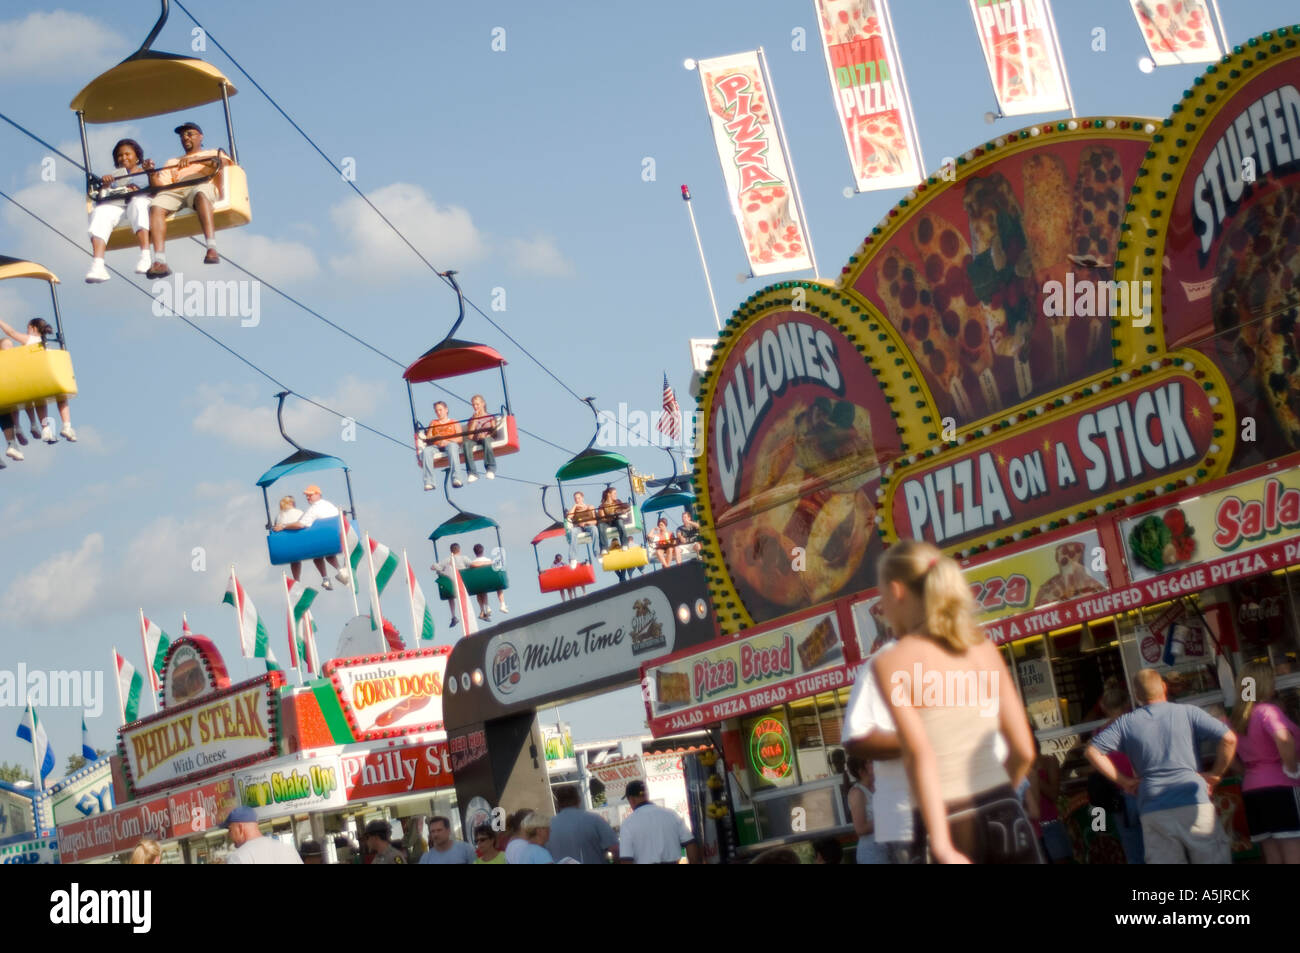 People and rides at the Illinois State Fair in Springfield Illinois - Stock Image